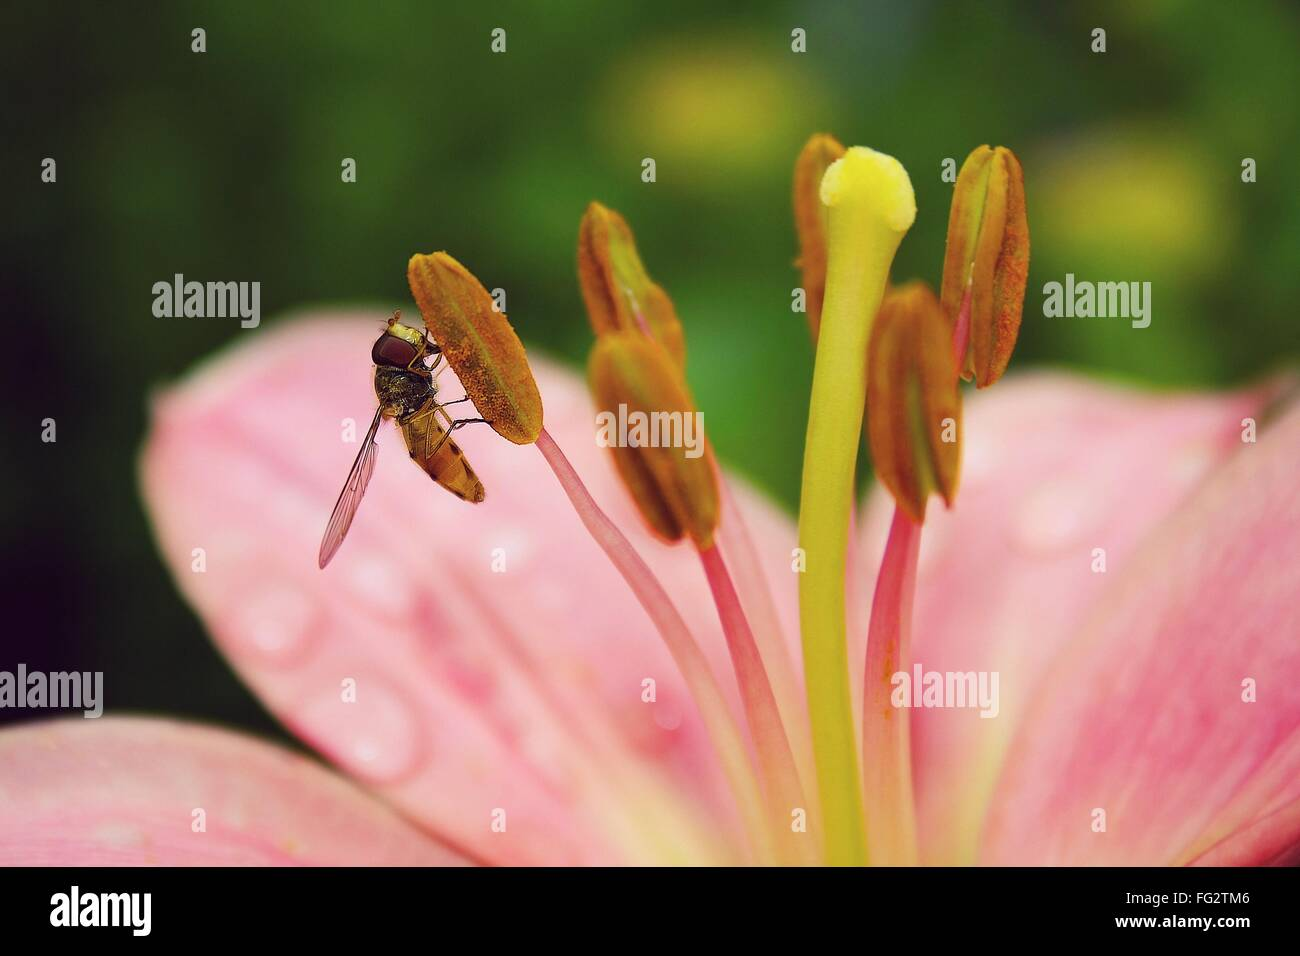 Extreme Close-Up Of Bee Pollinating On Pink Flower - Stock Image